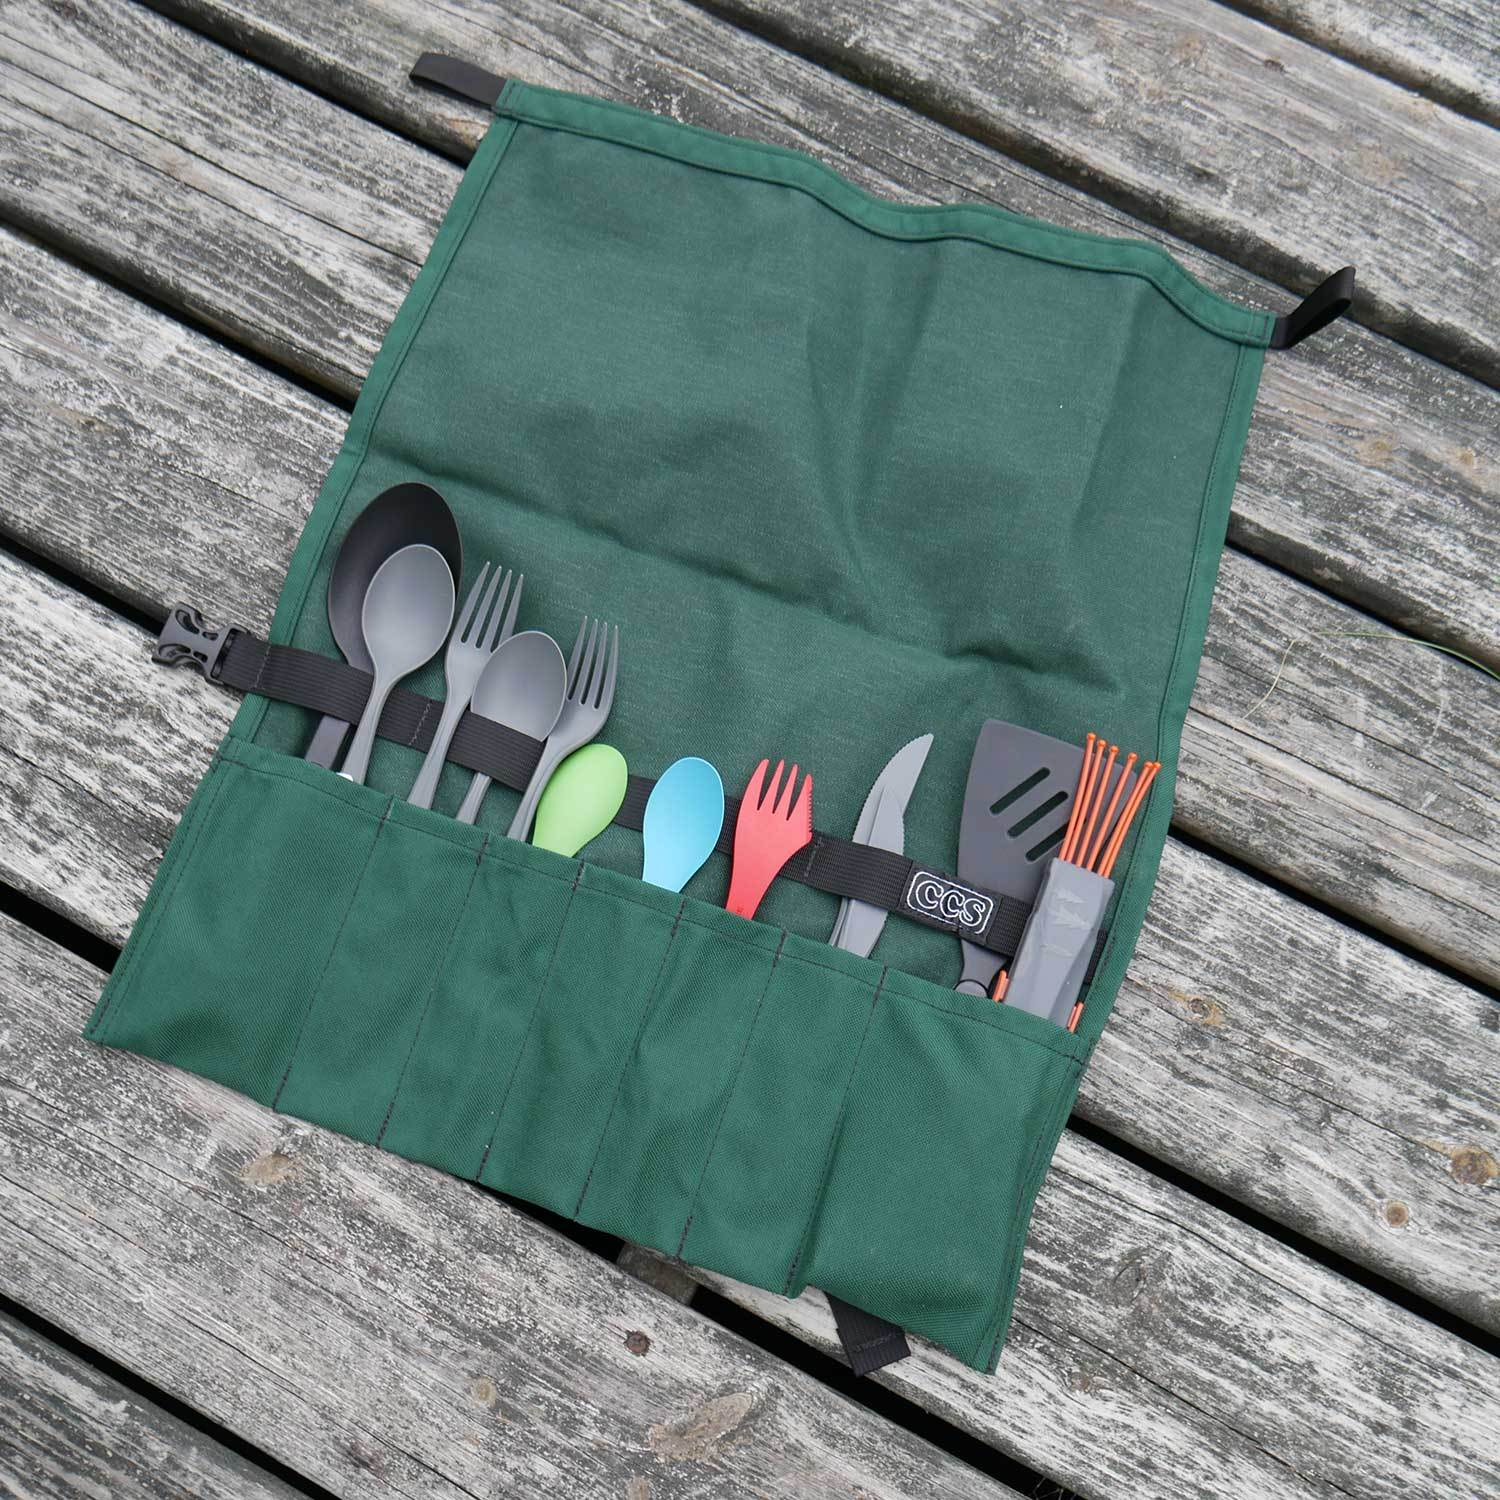 Utensil Roll Up By Ccs Camp Kitchen Organizer Boundary